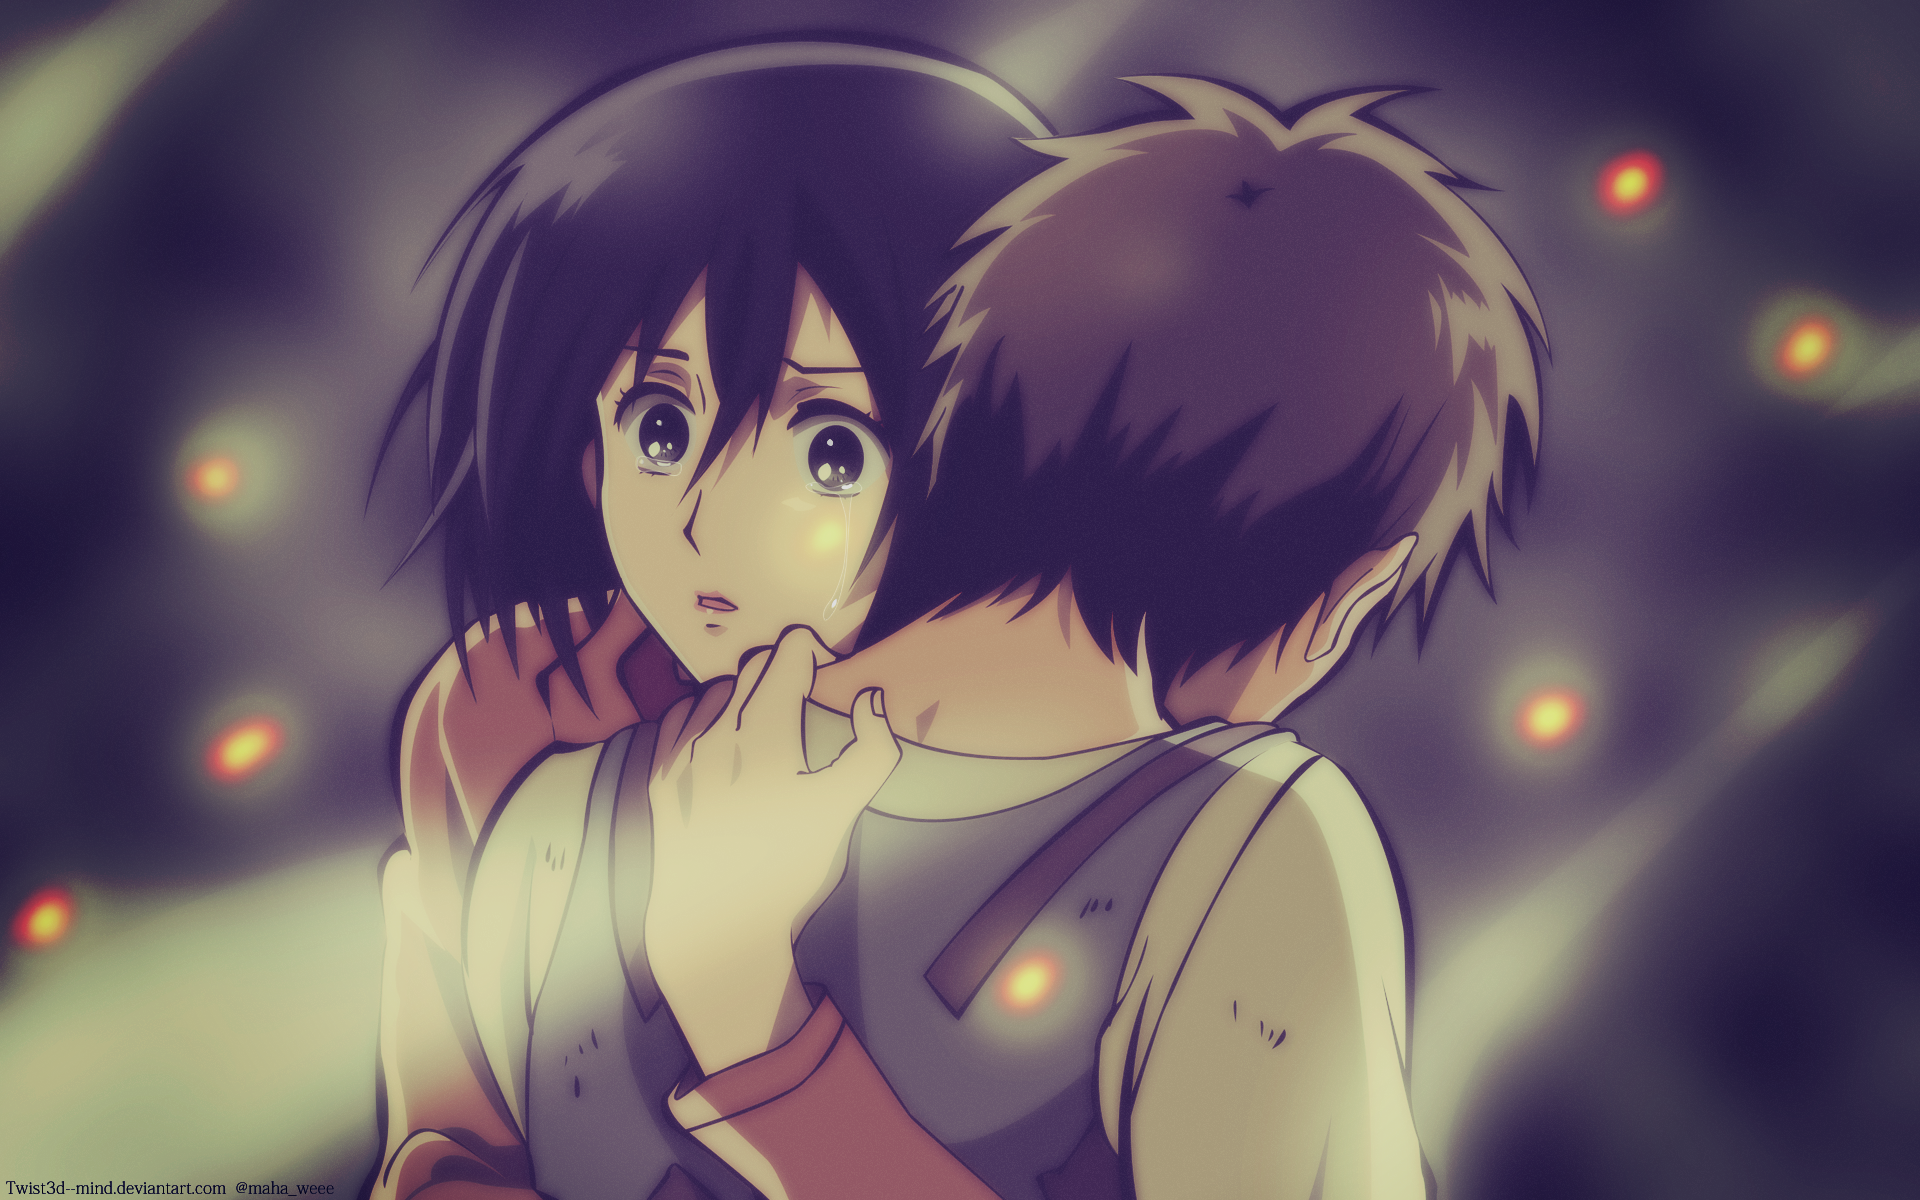 Anime - Attack On Titan  Hug Shingeki No Kyojin Eren Yeager Mikasa Ackerman Wallpaper